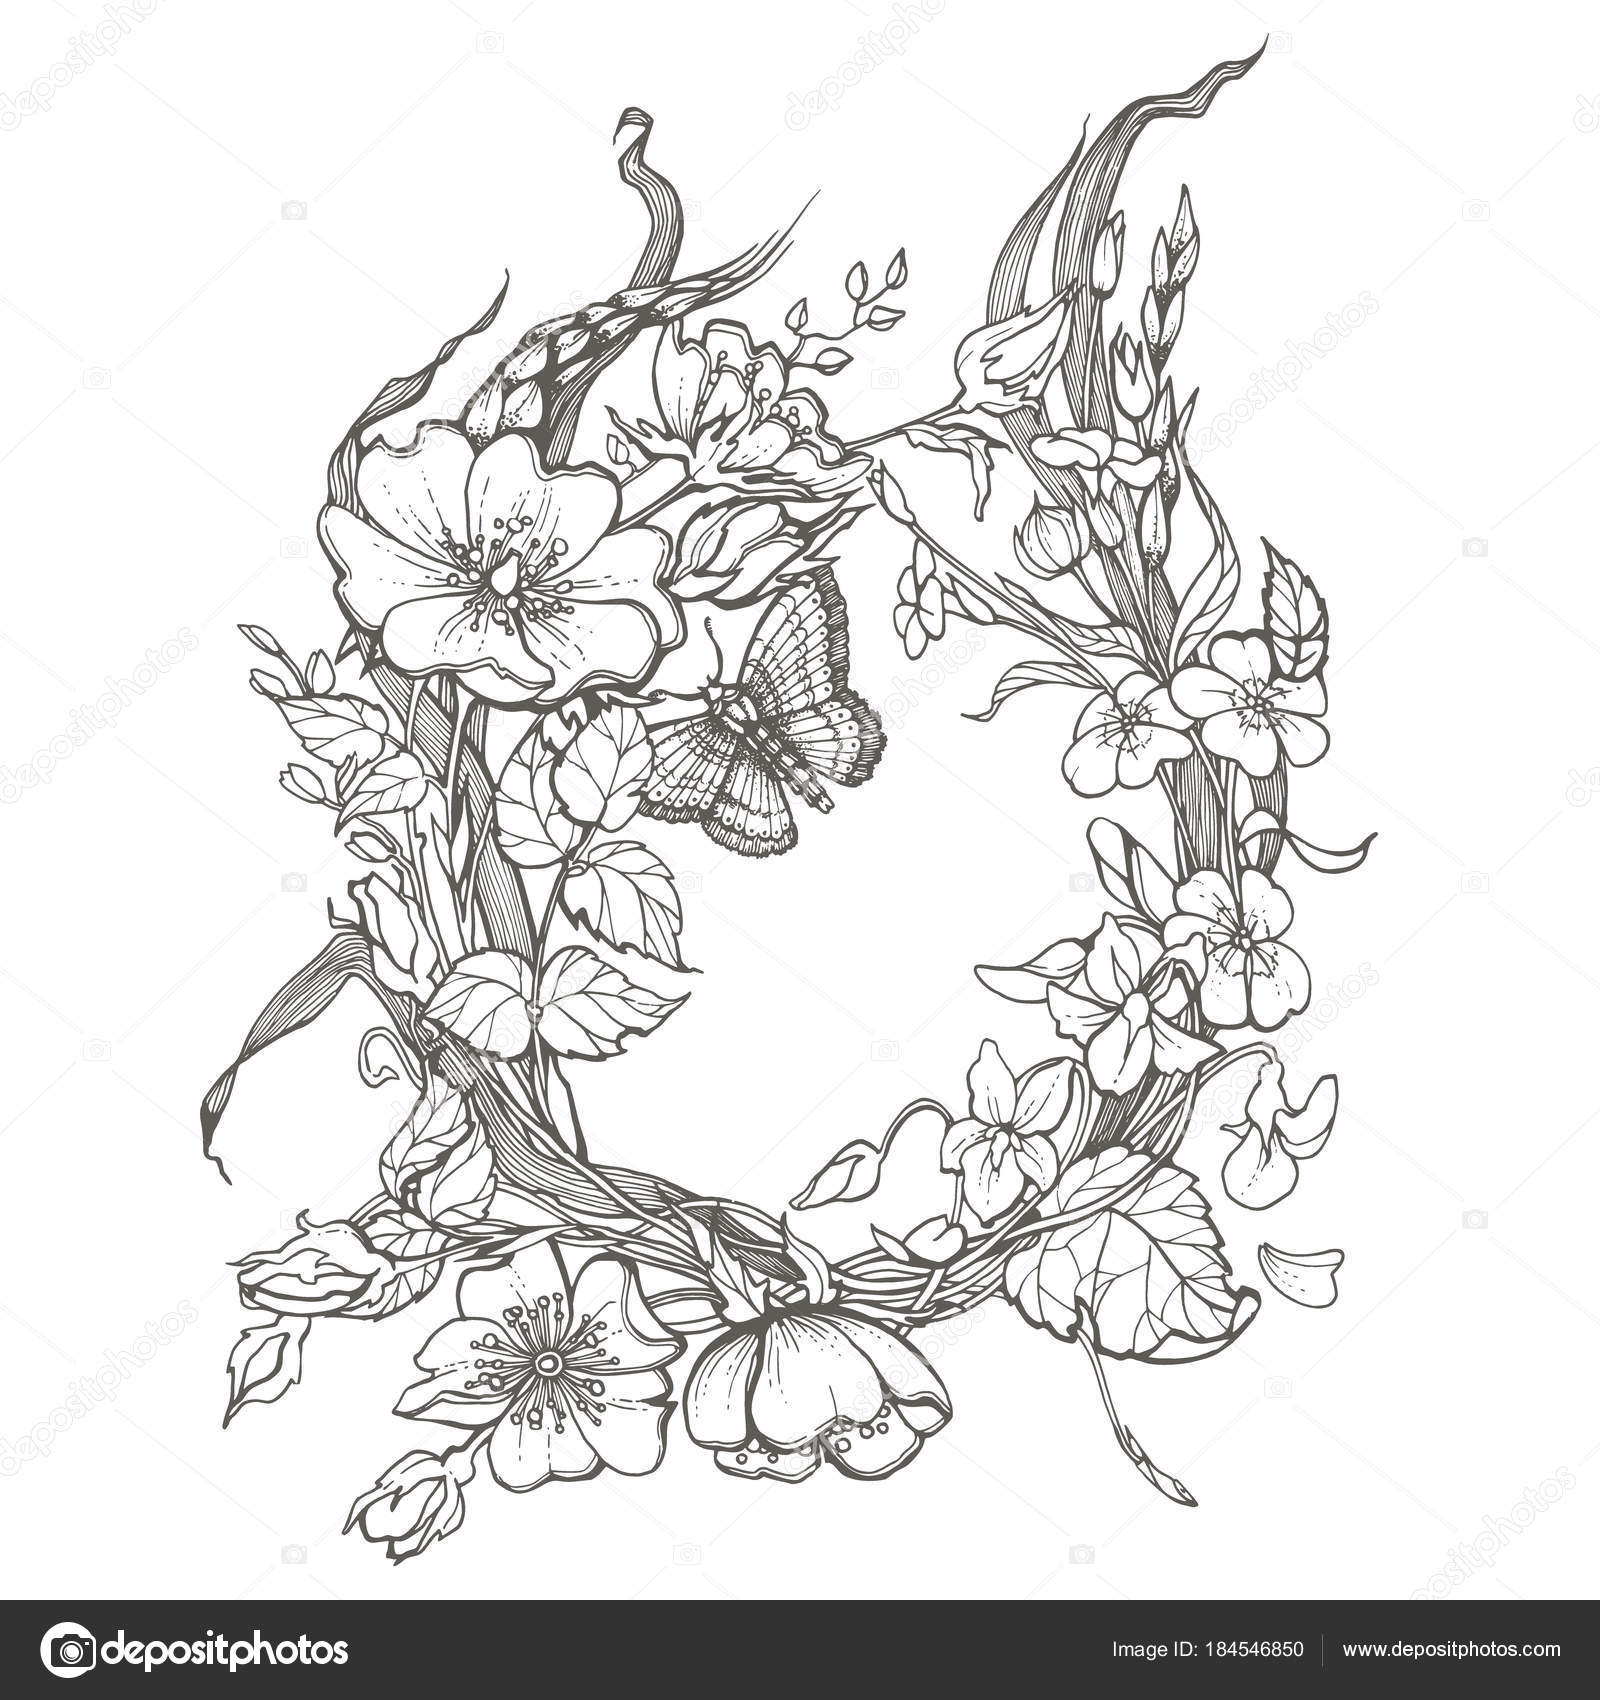 Wild dog rose flowers frame contour ink adult coloring page drawing ...